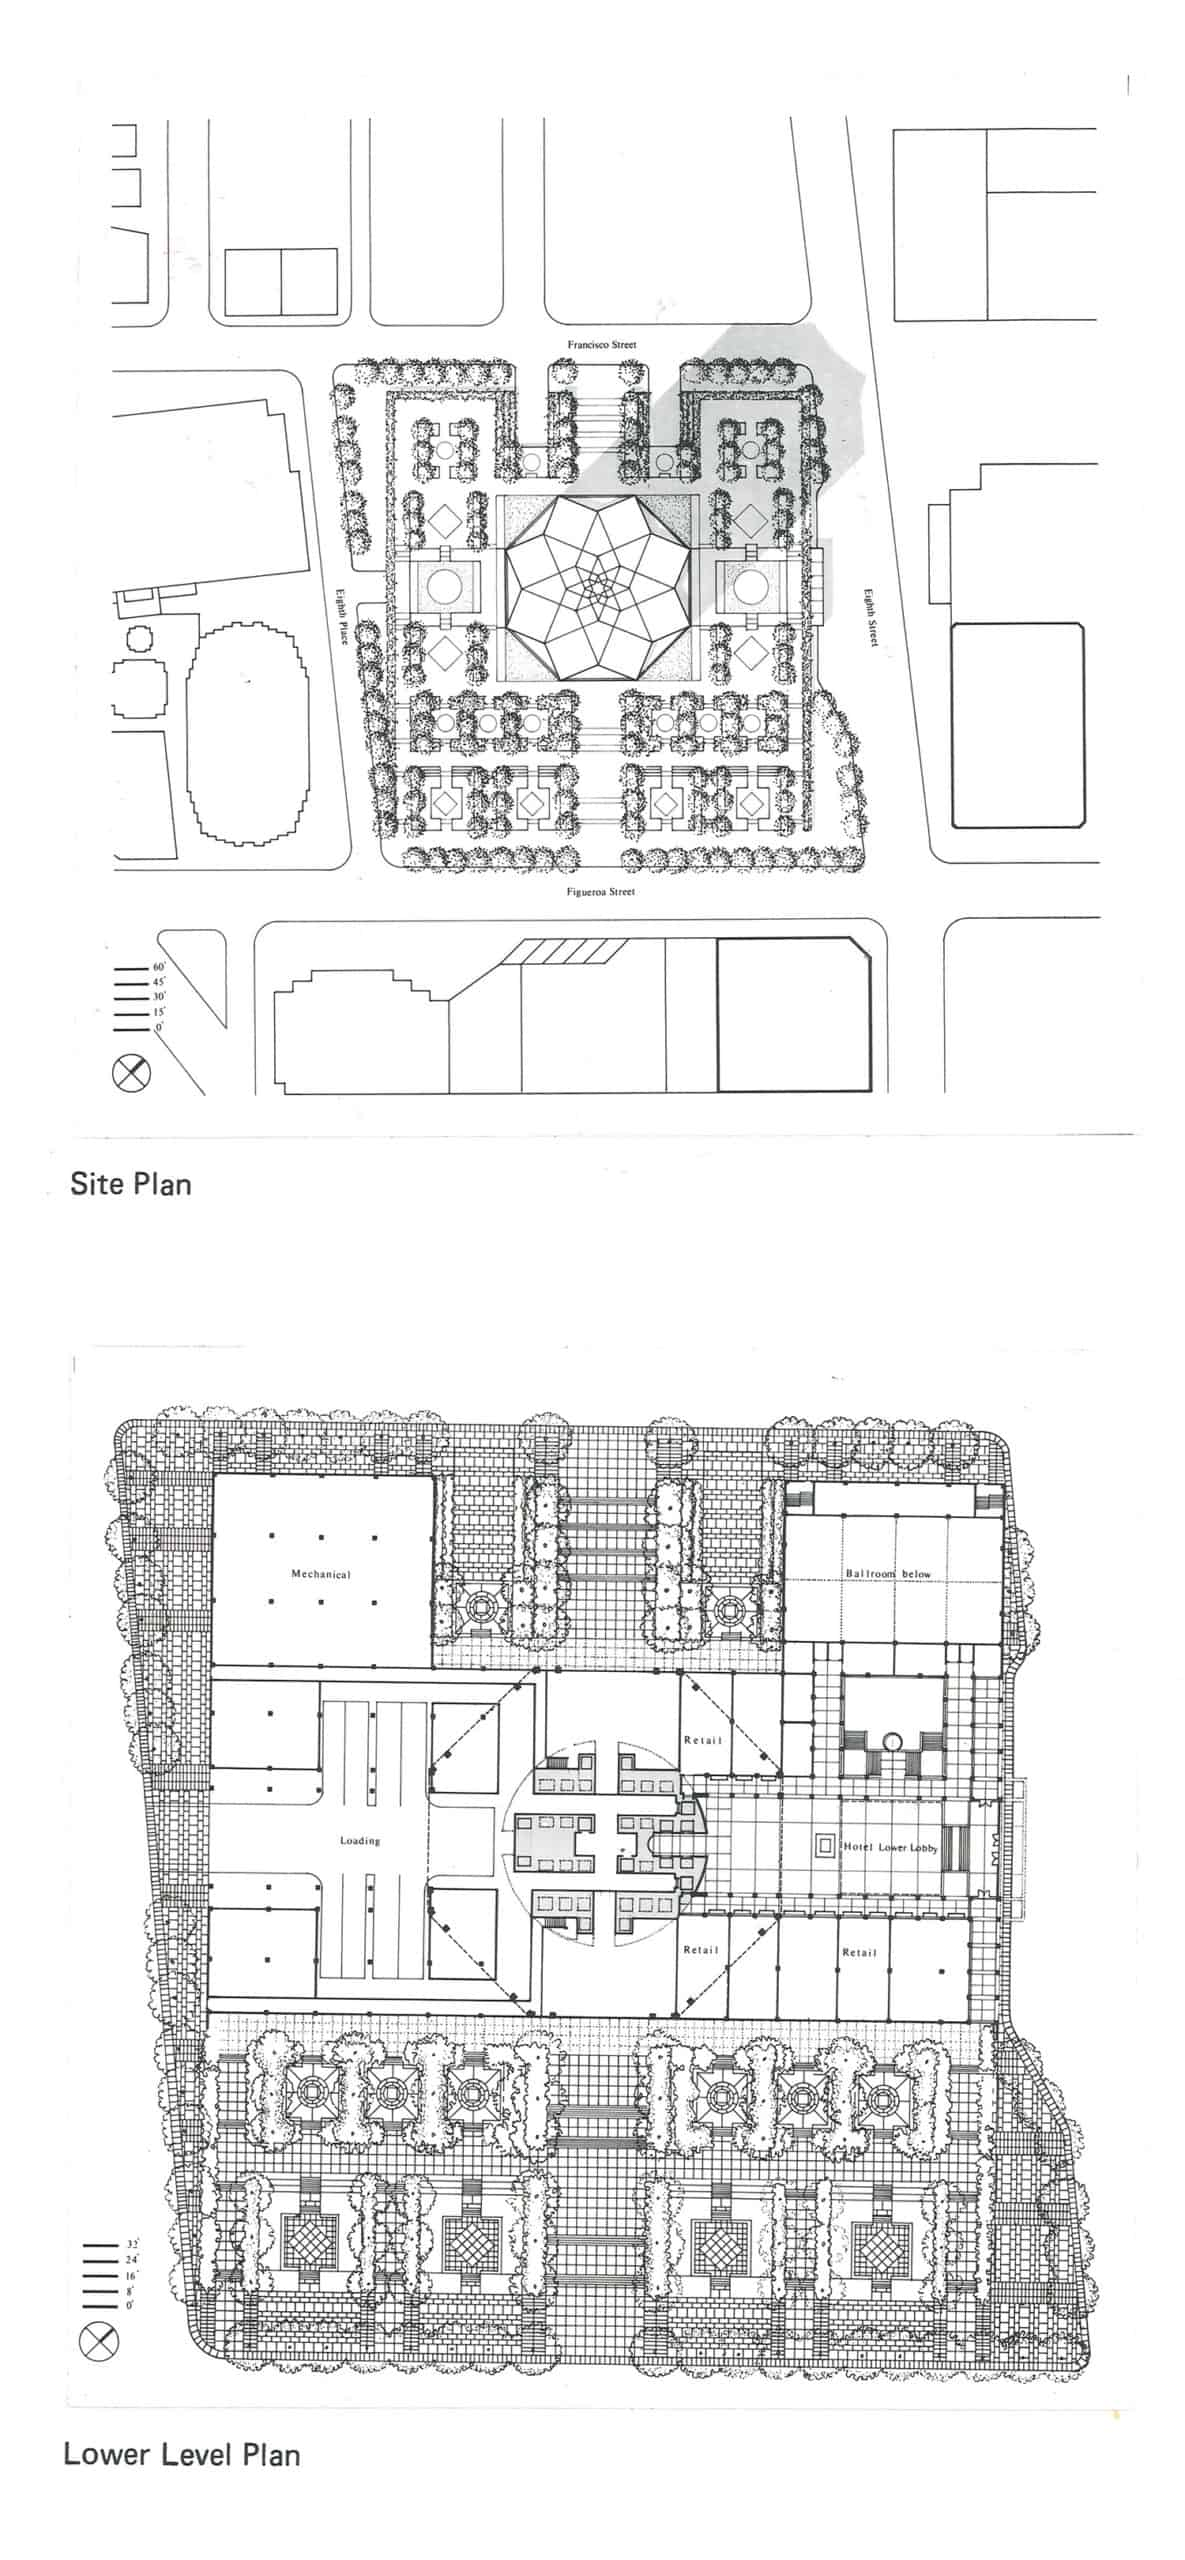 SITE-LOWER-LEVEL-PLAN